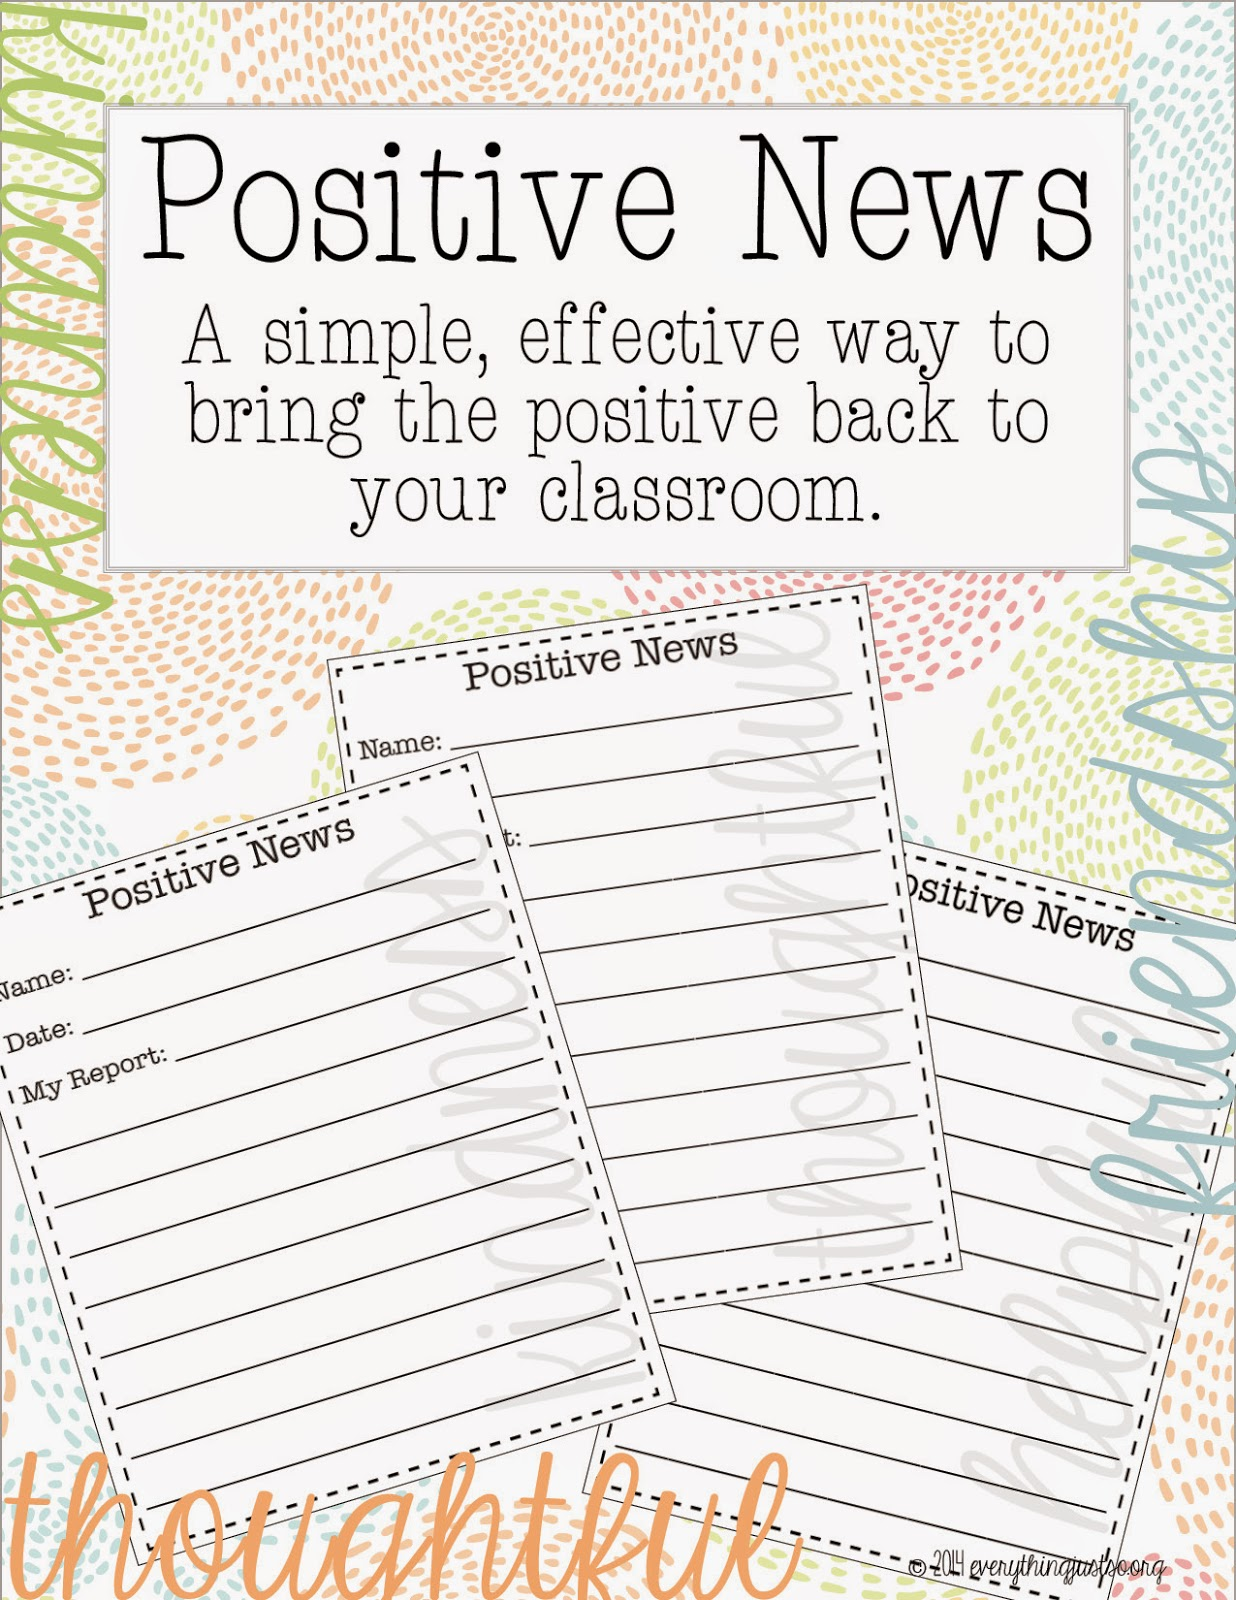 Teachers everywhere struggle with negative classroom environments. Check out this positive news board to bring the positive back to your classroom. You might be surprised to see how quickly your students compliment one another and contribute to this new positive classroom environment!